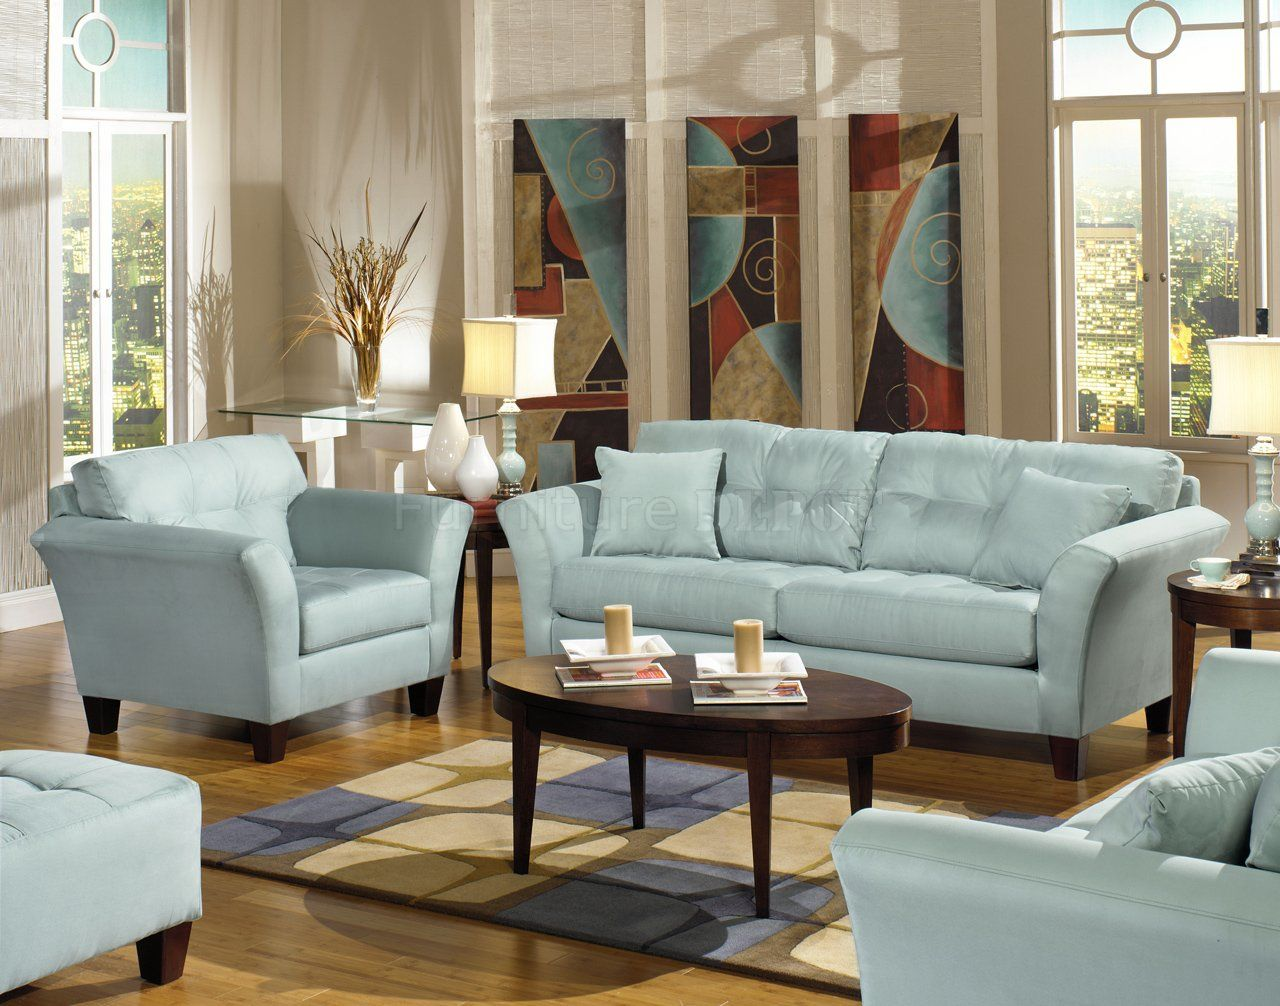 unique tufted sofa sectional plan-Beautiful Tufted sofa Sectional Model